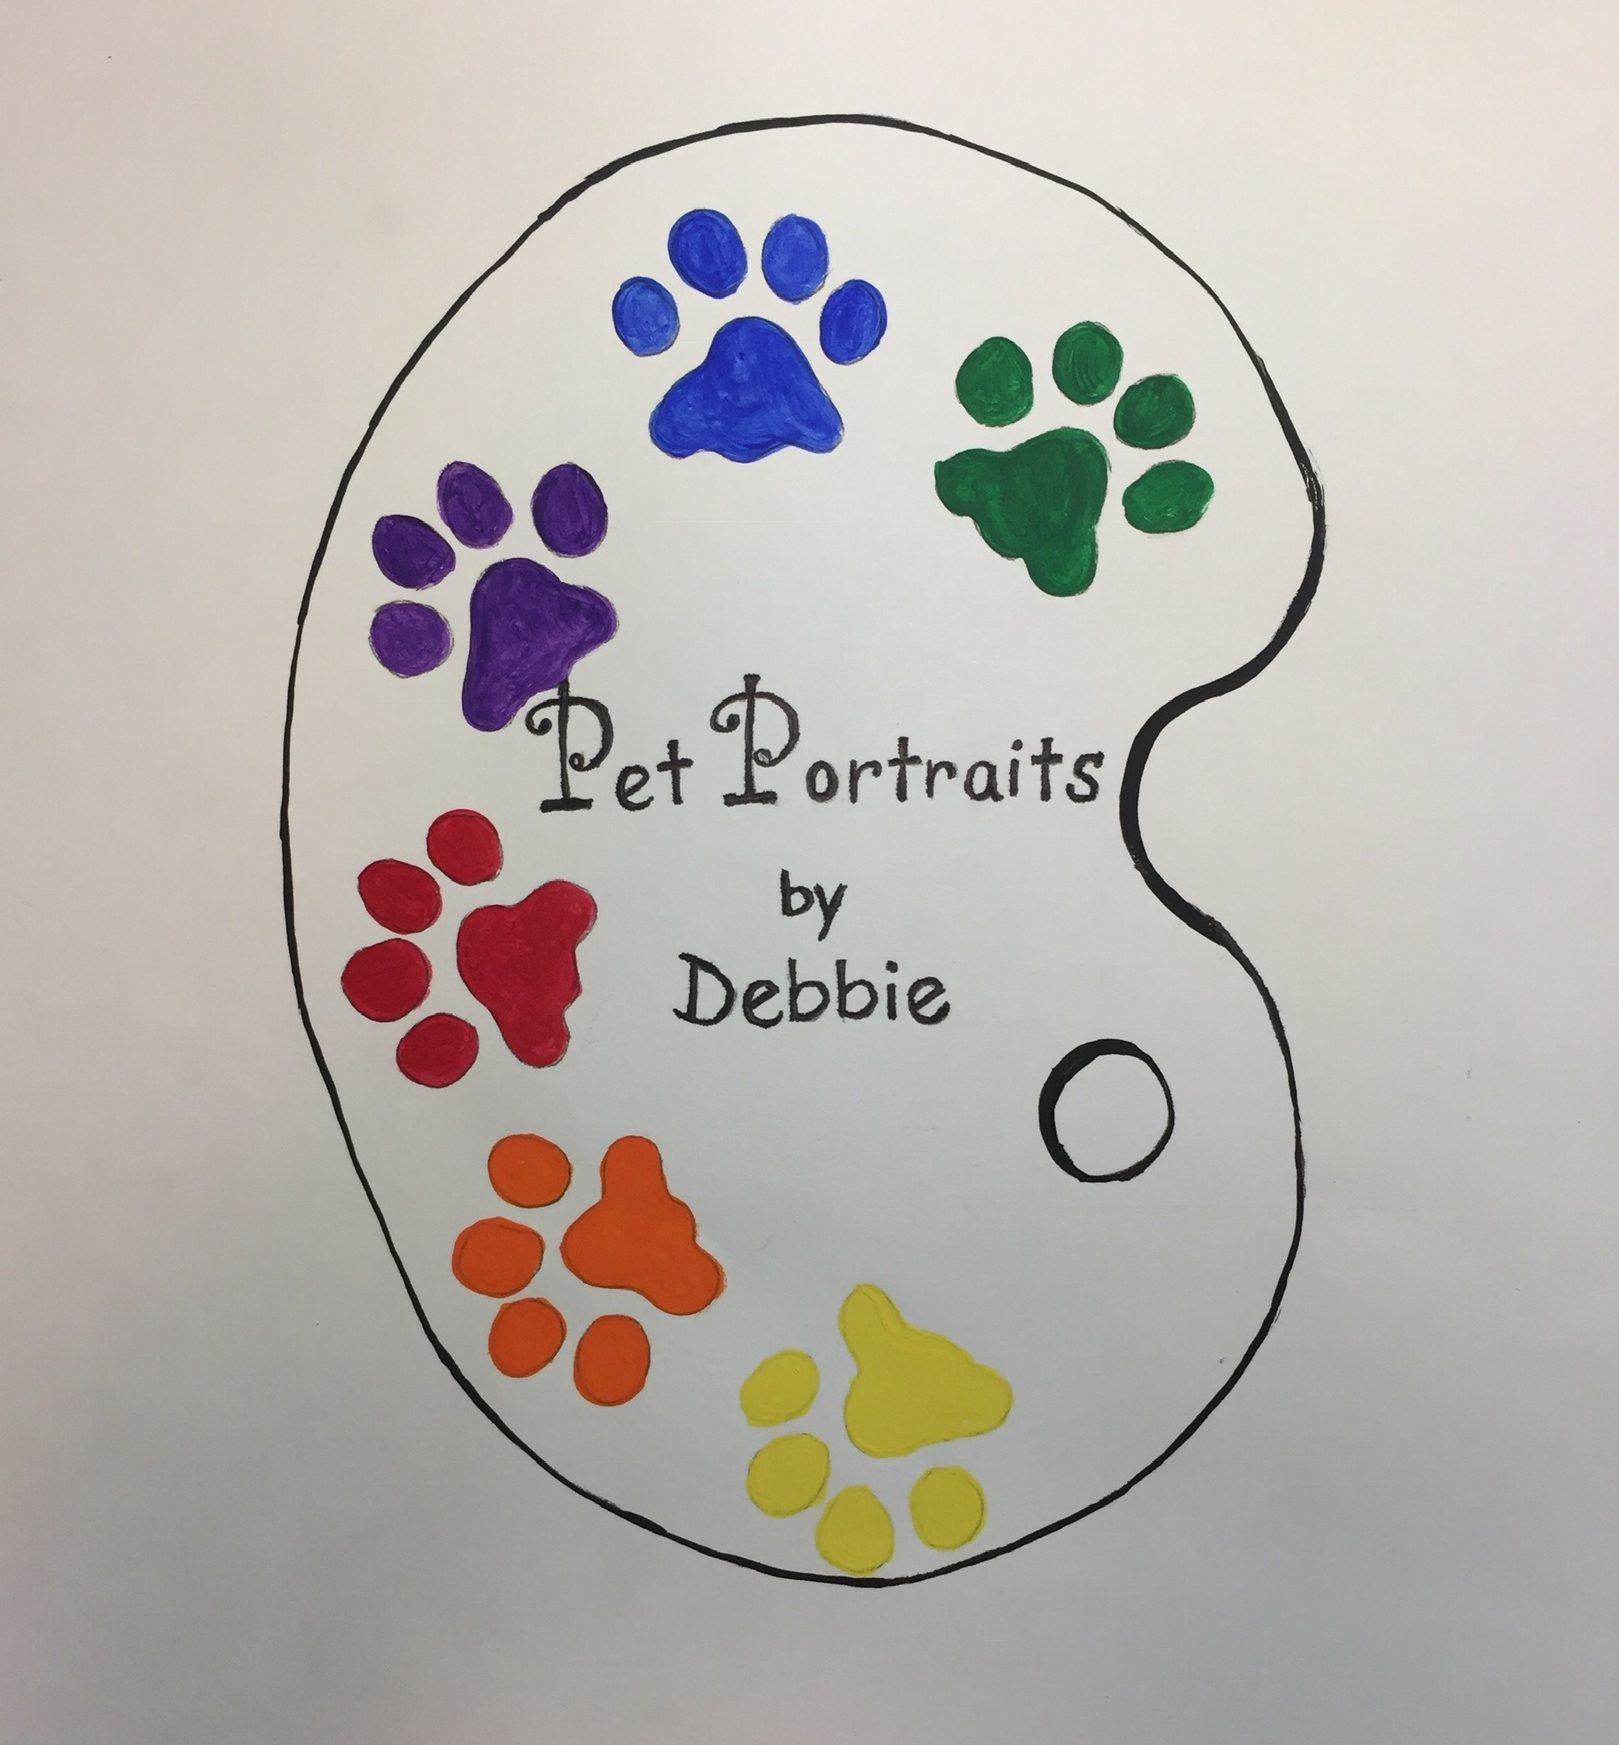 Pet Portraits by Debbie